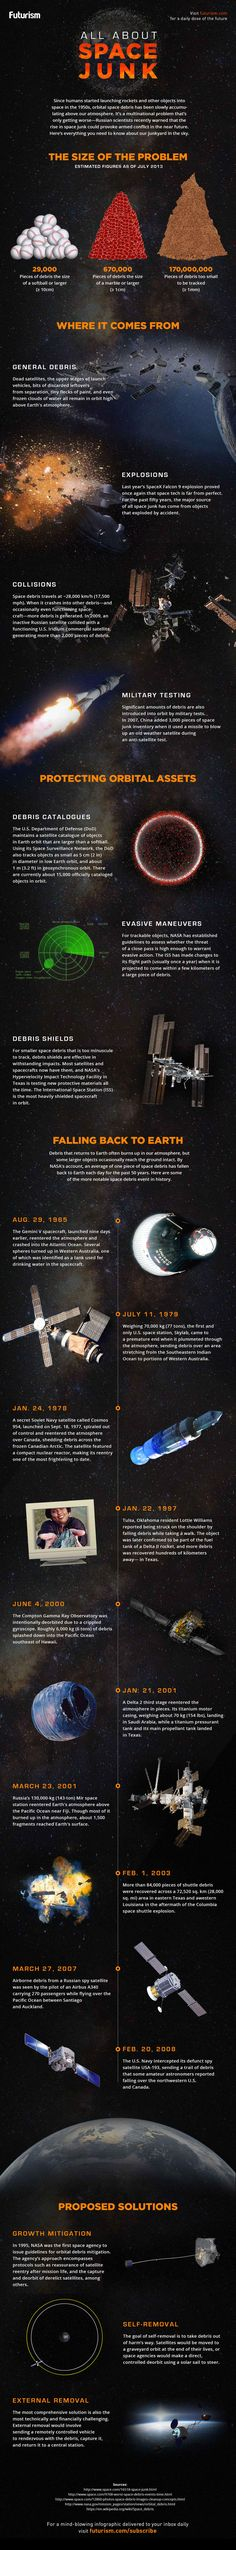 All about Space Junk - infographic 9/8/17